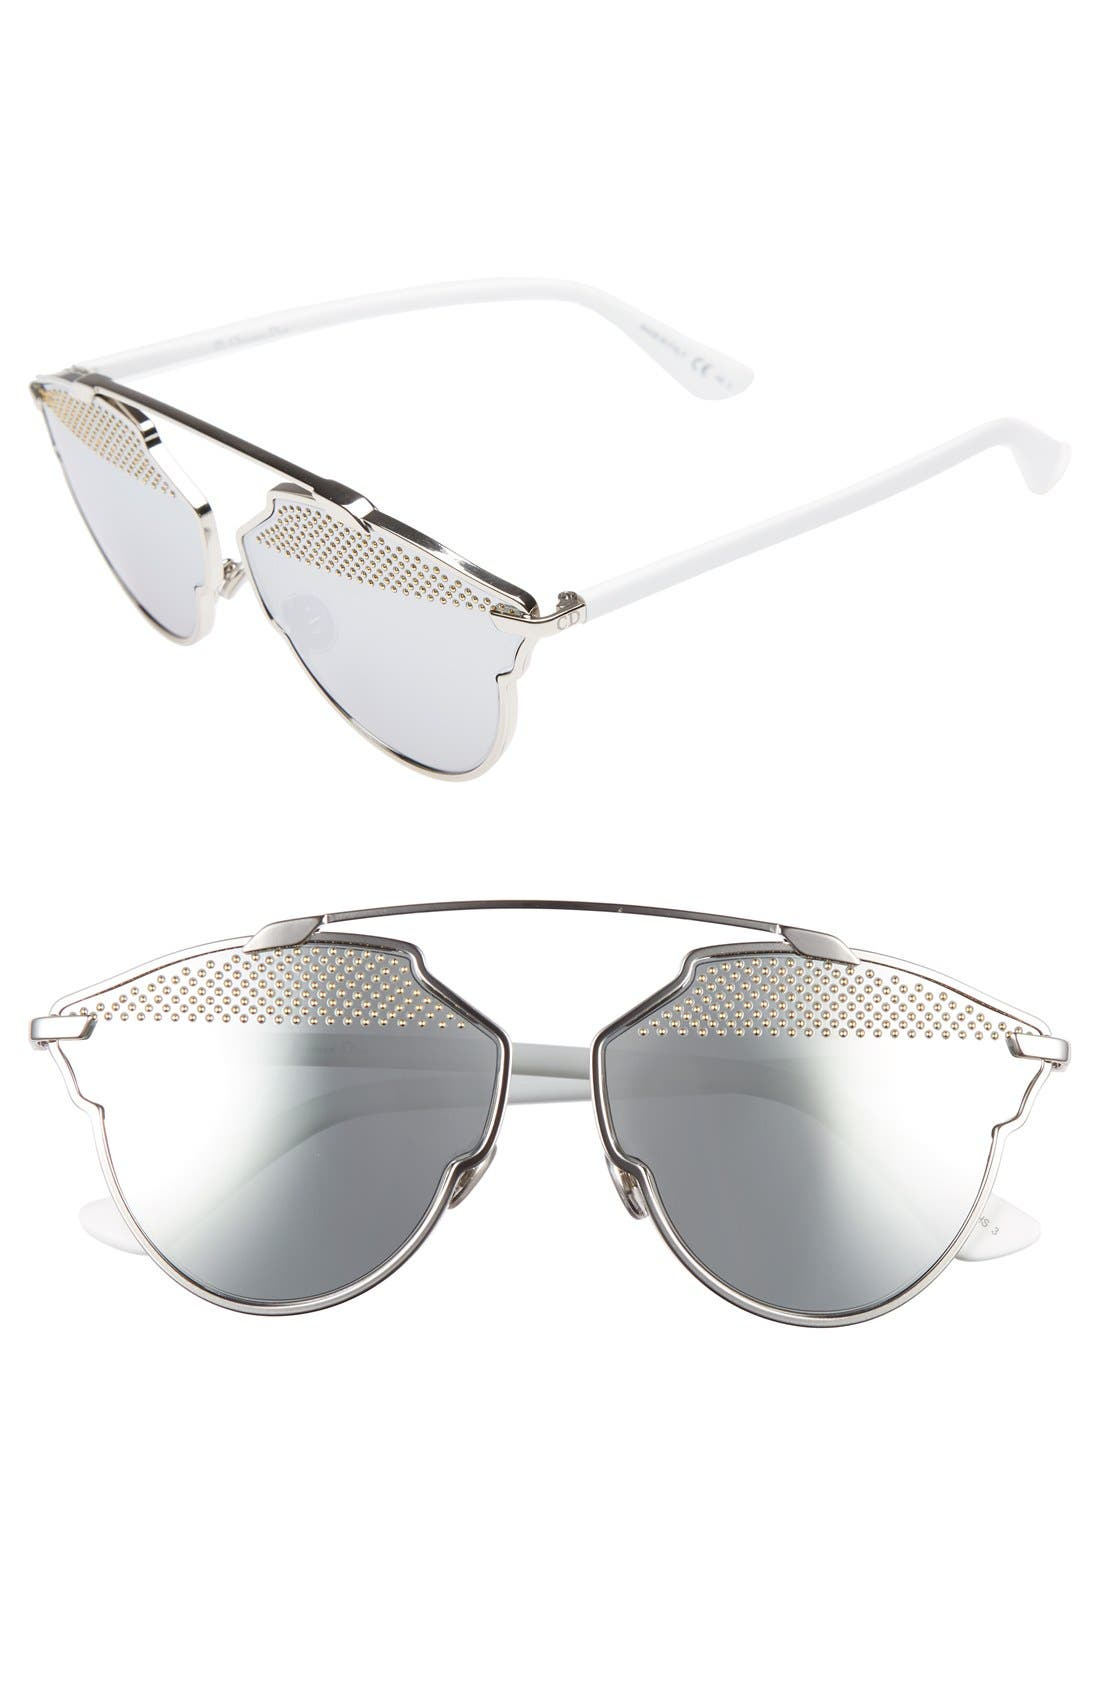 Alternate Image 1 Selected - Dior So Real Studded 59mm Brow Bar Sunglasses